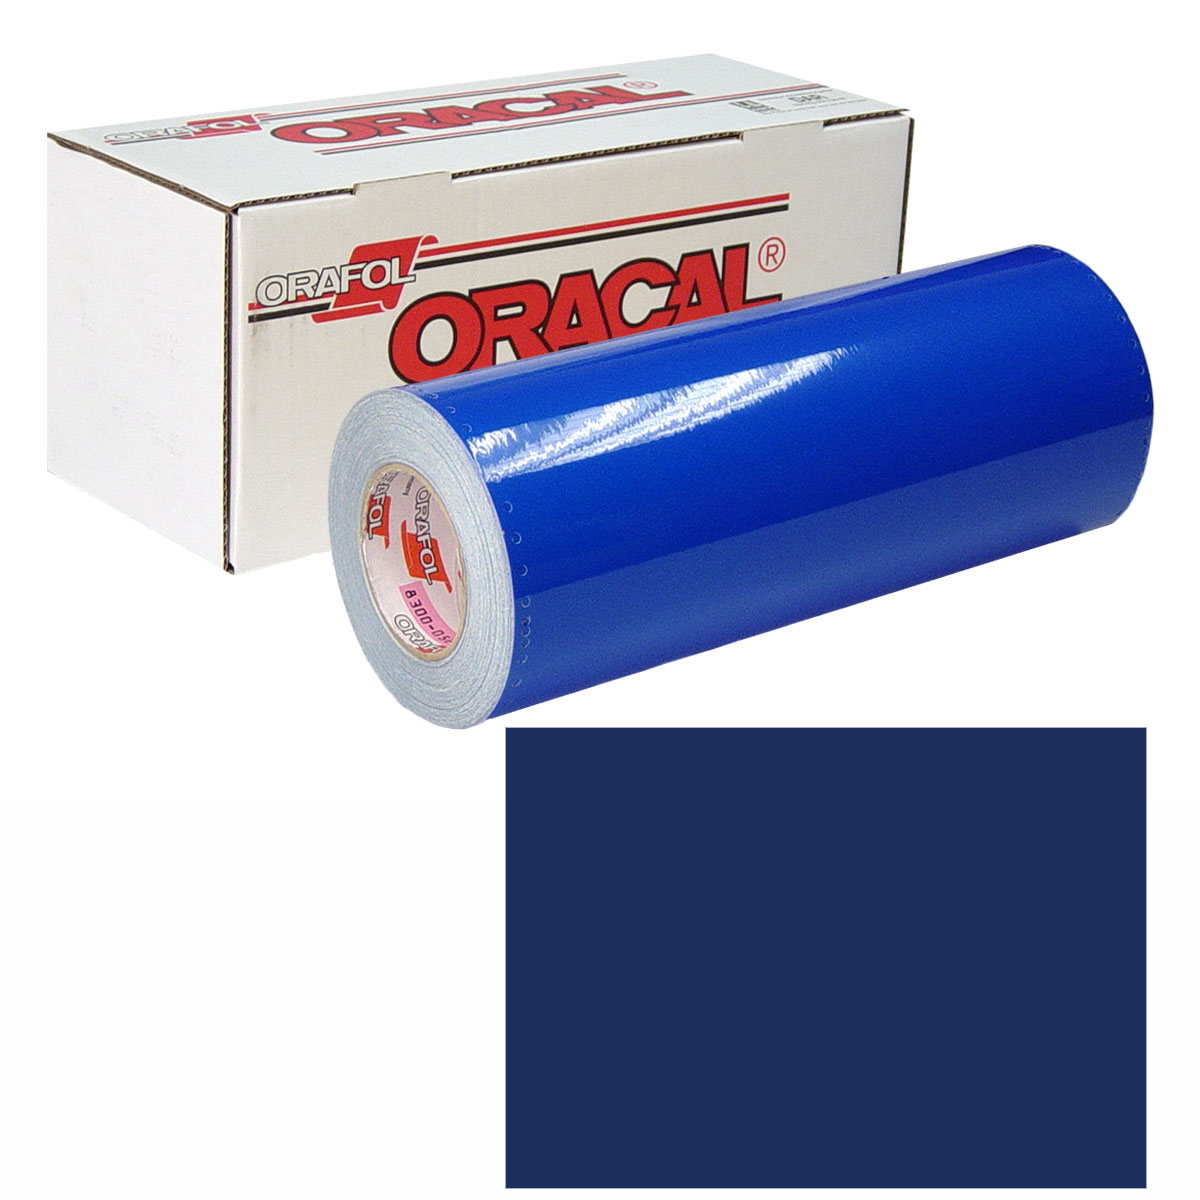 ORACAL 631 15In X 10Yd 050 Dark Blue